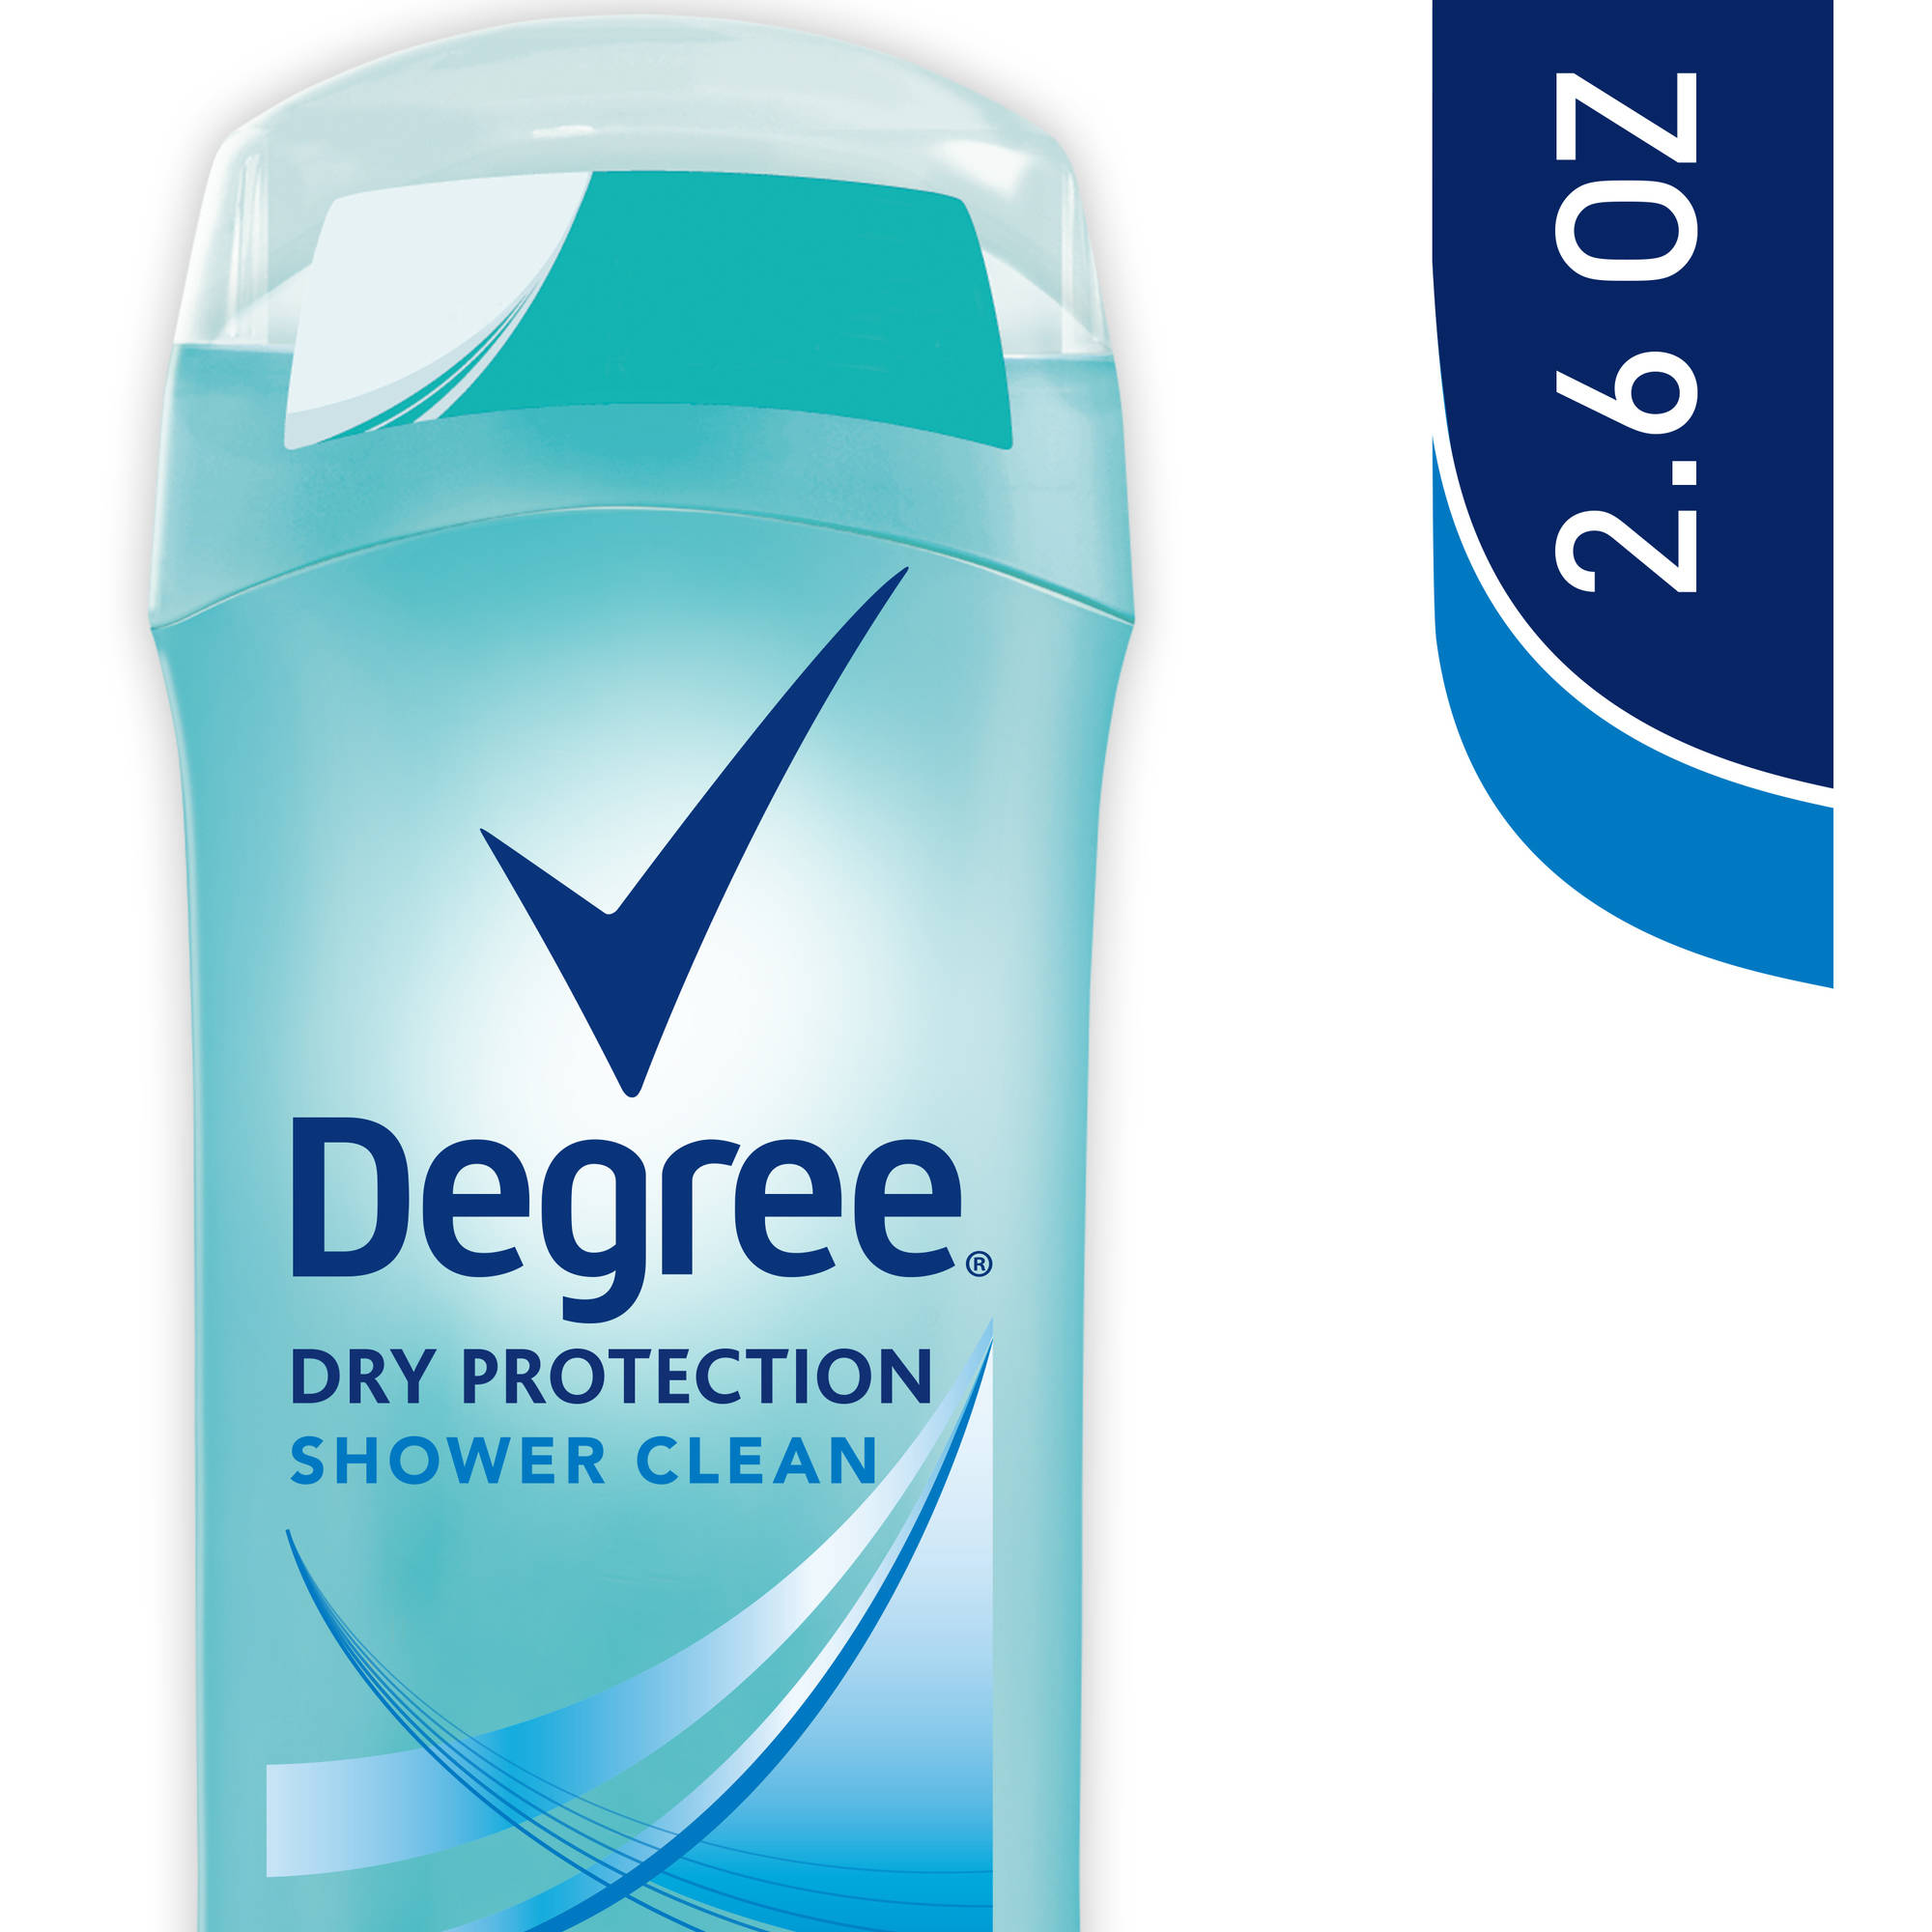 Degree Dry Protection Shower Clean Antiperspirant Deodorant, 2.6 oz